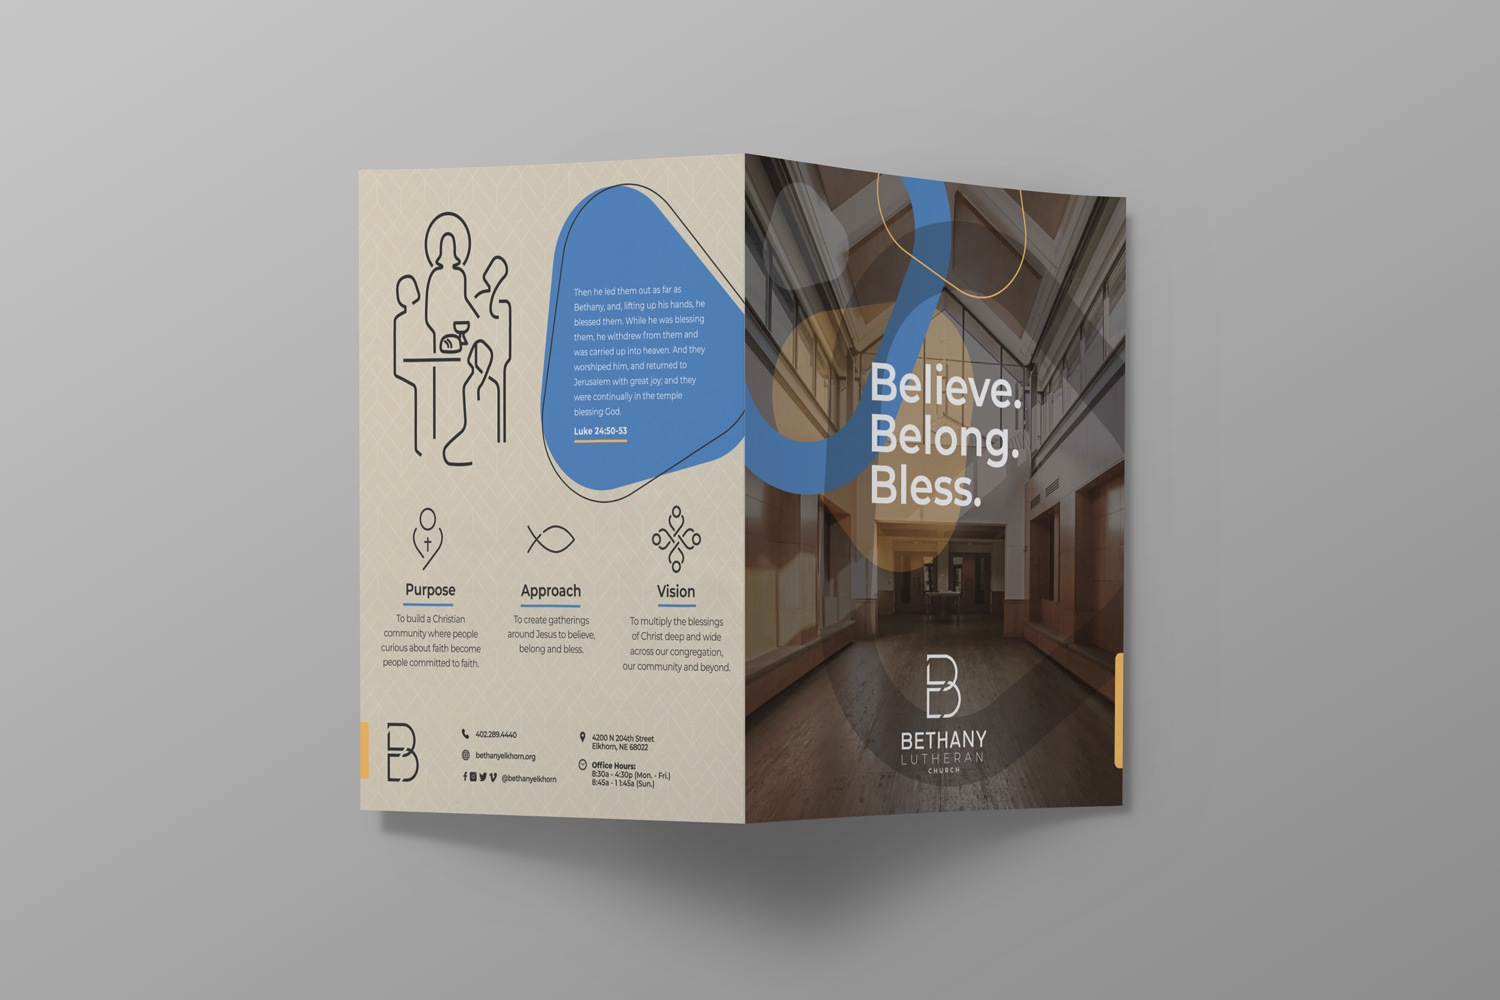 church bulletin design for church brand style guide for church branding strategy